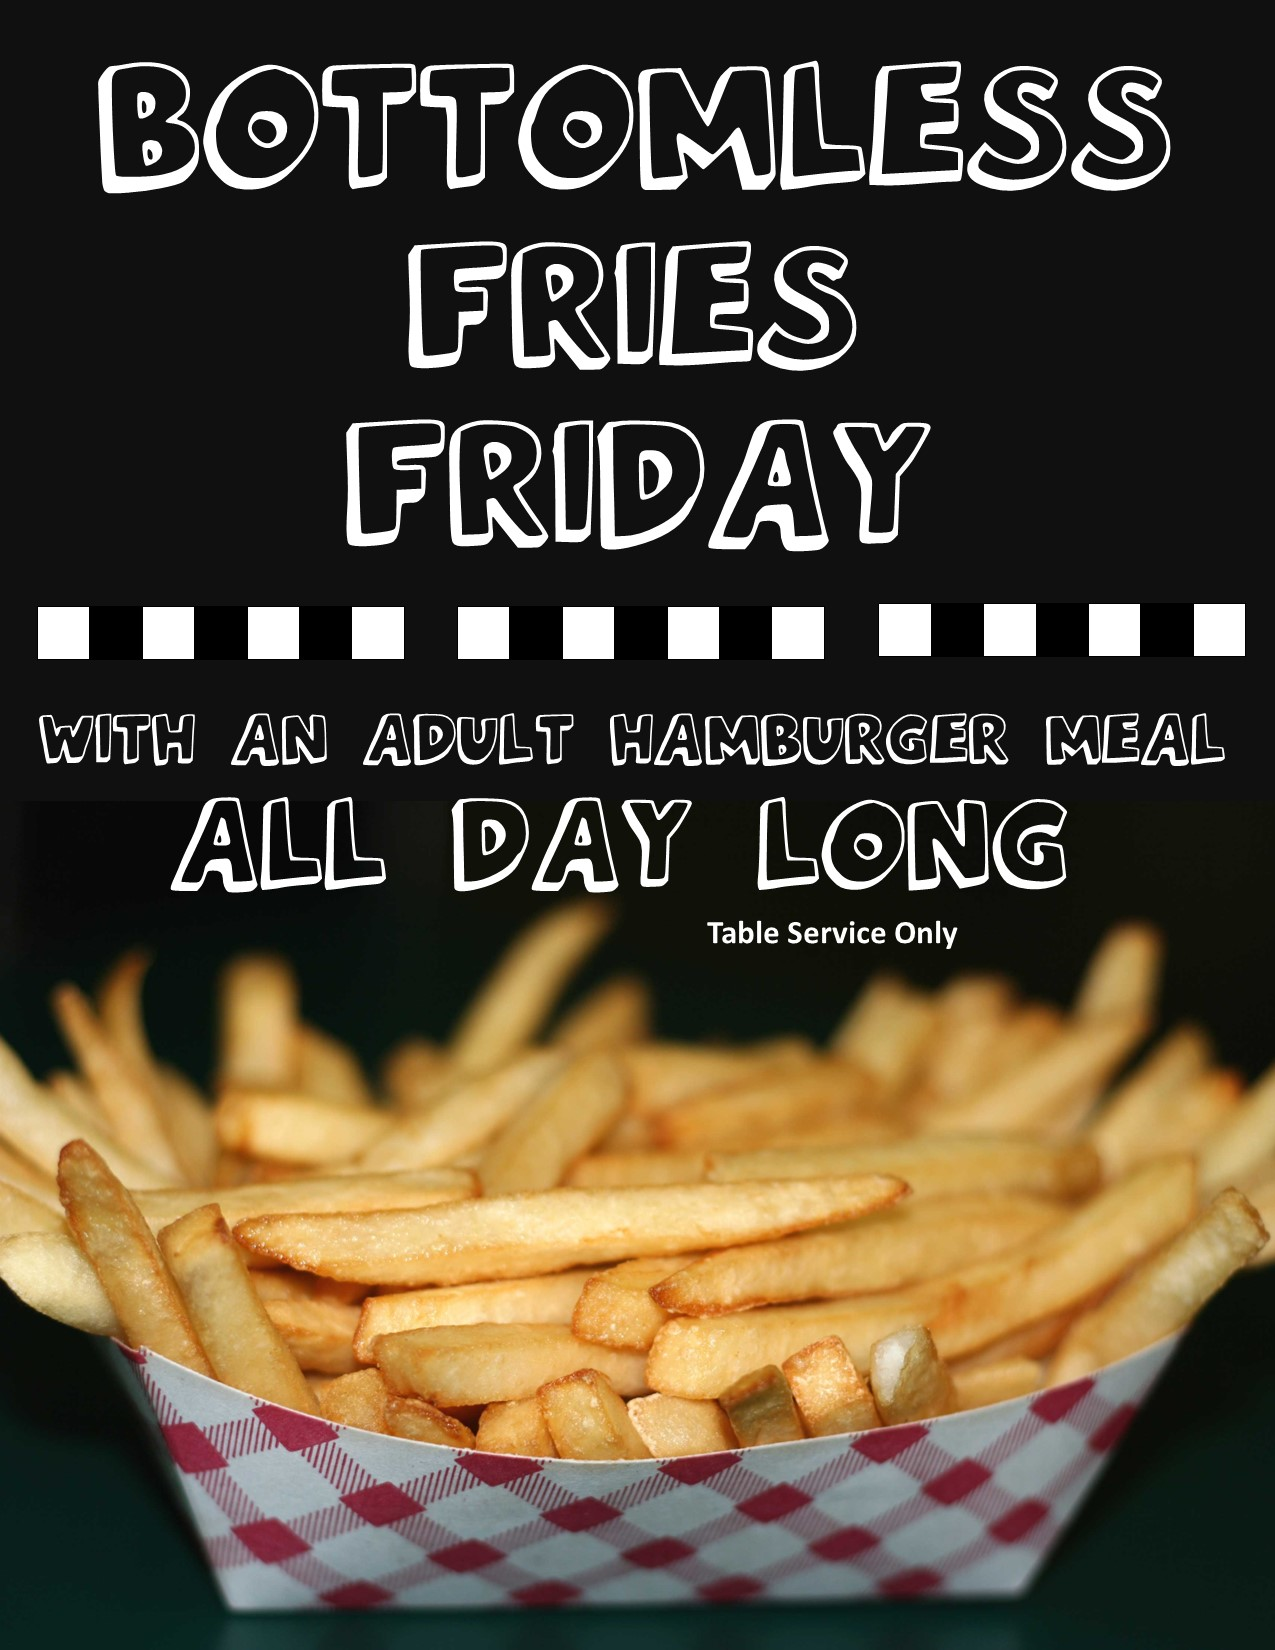 Bottomless Fries Friday